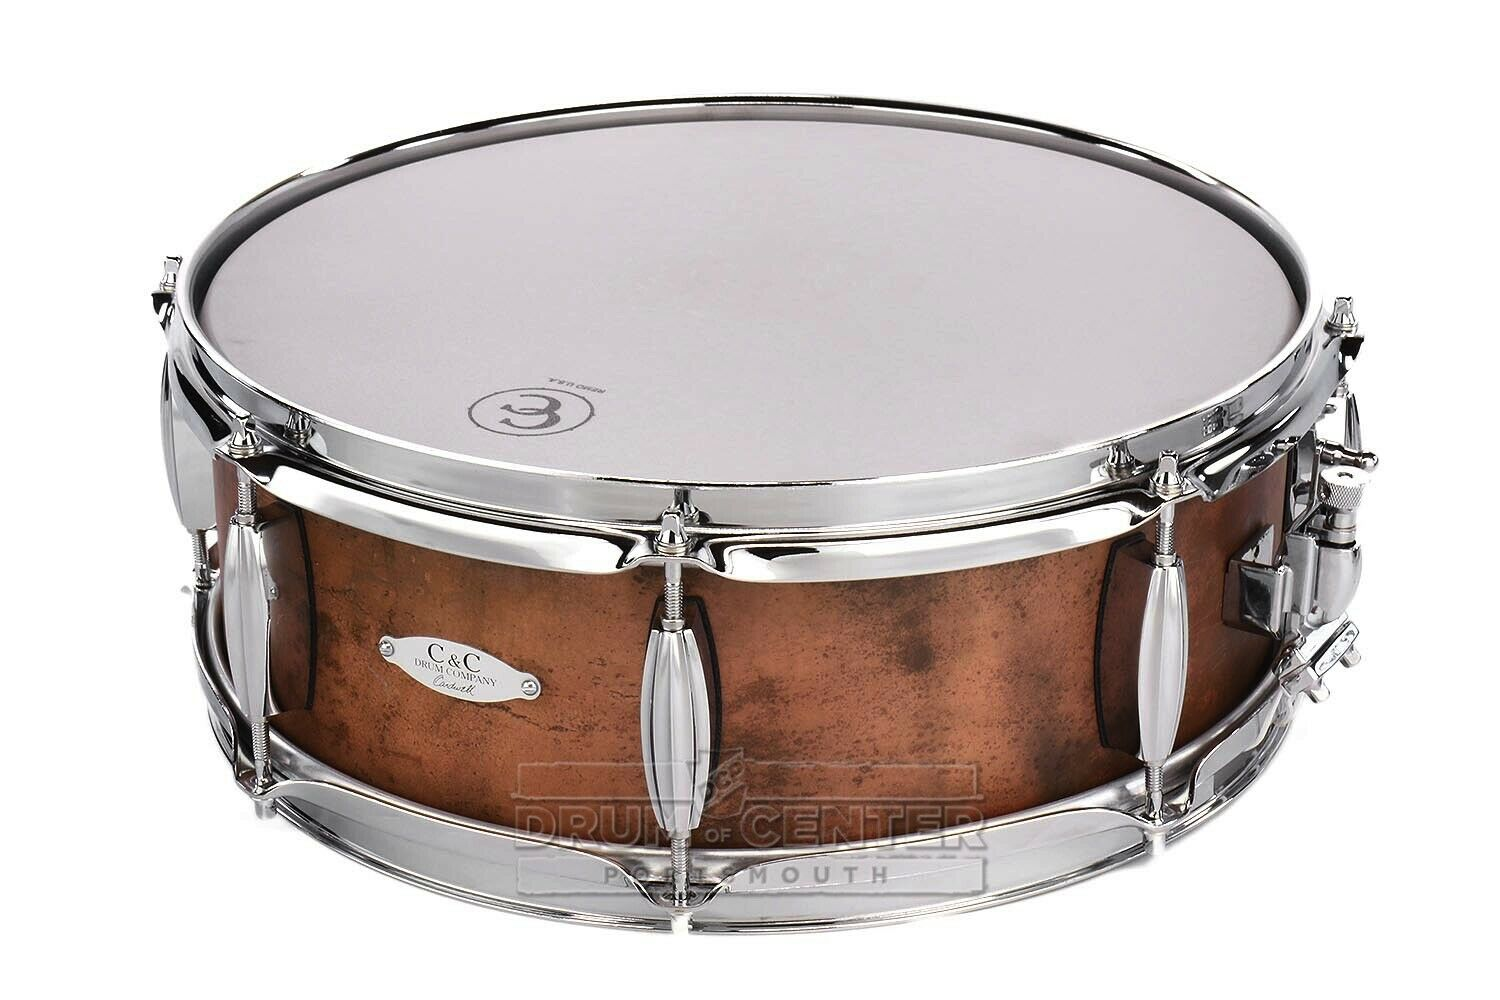 C&C Aged Copper Over Steel Snare Drum 14x5 8-Lug